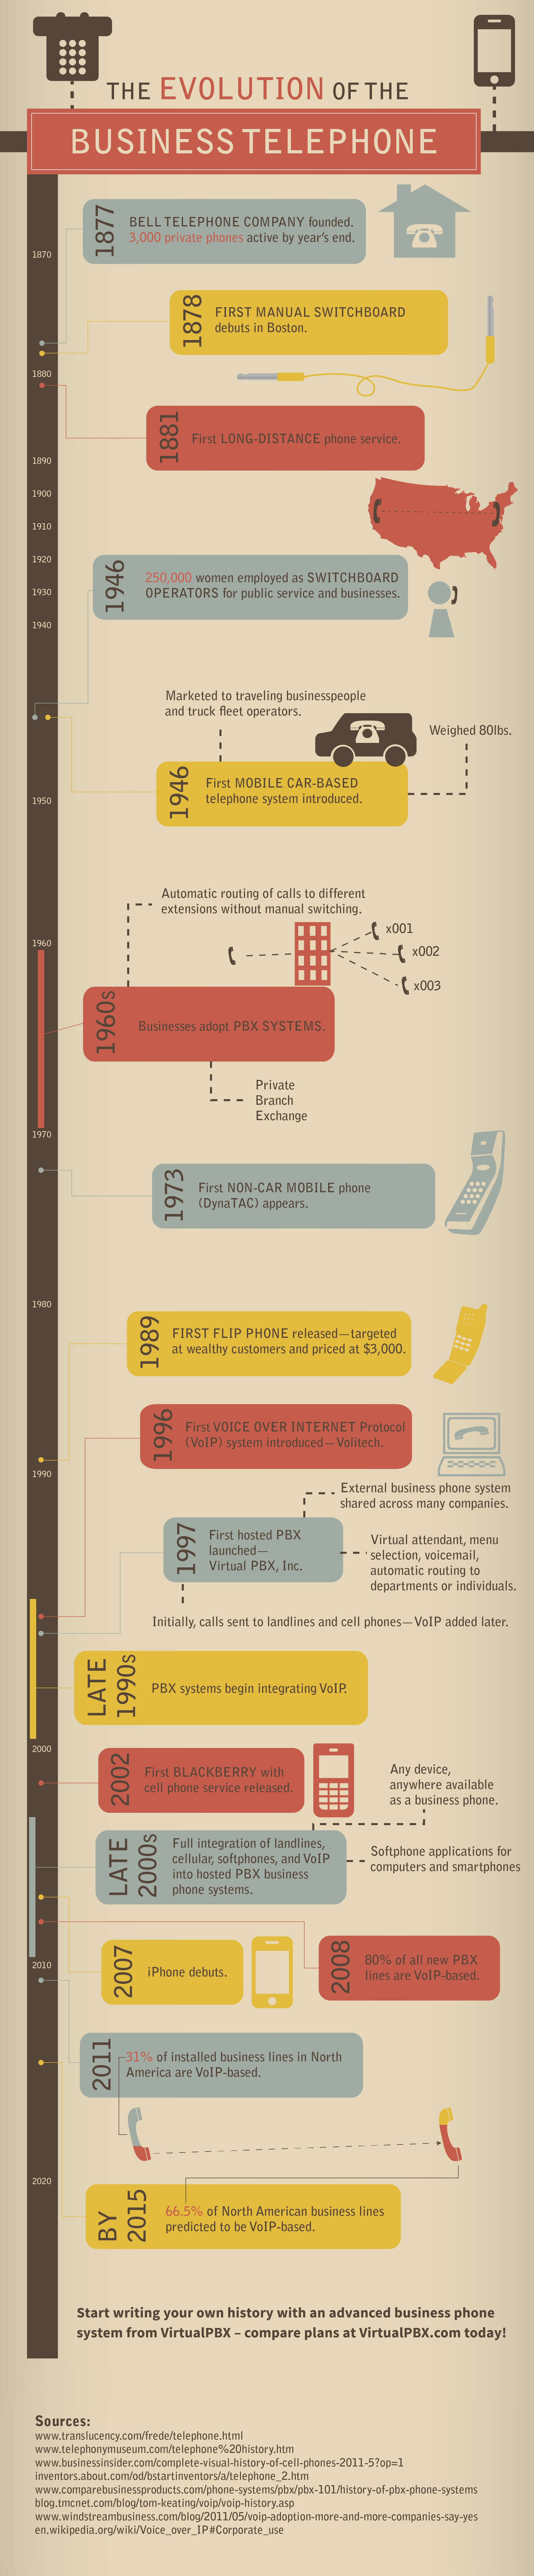 Compare Internet Providers >> Phone History: Timeline of the Telephone from Alexander Bell to Today